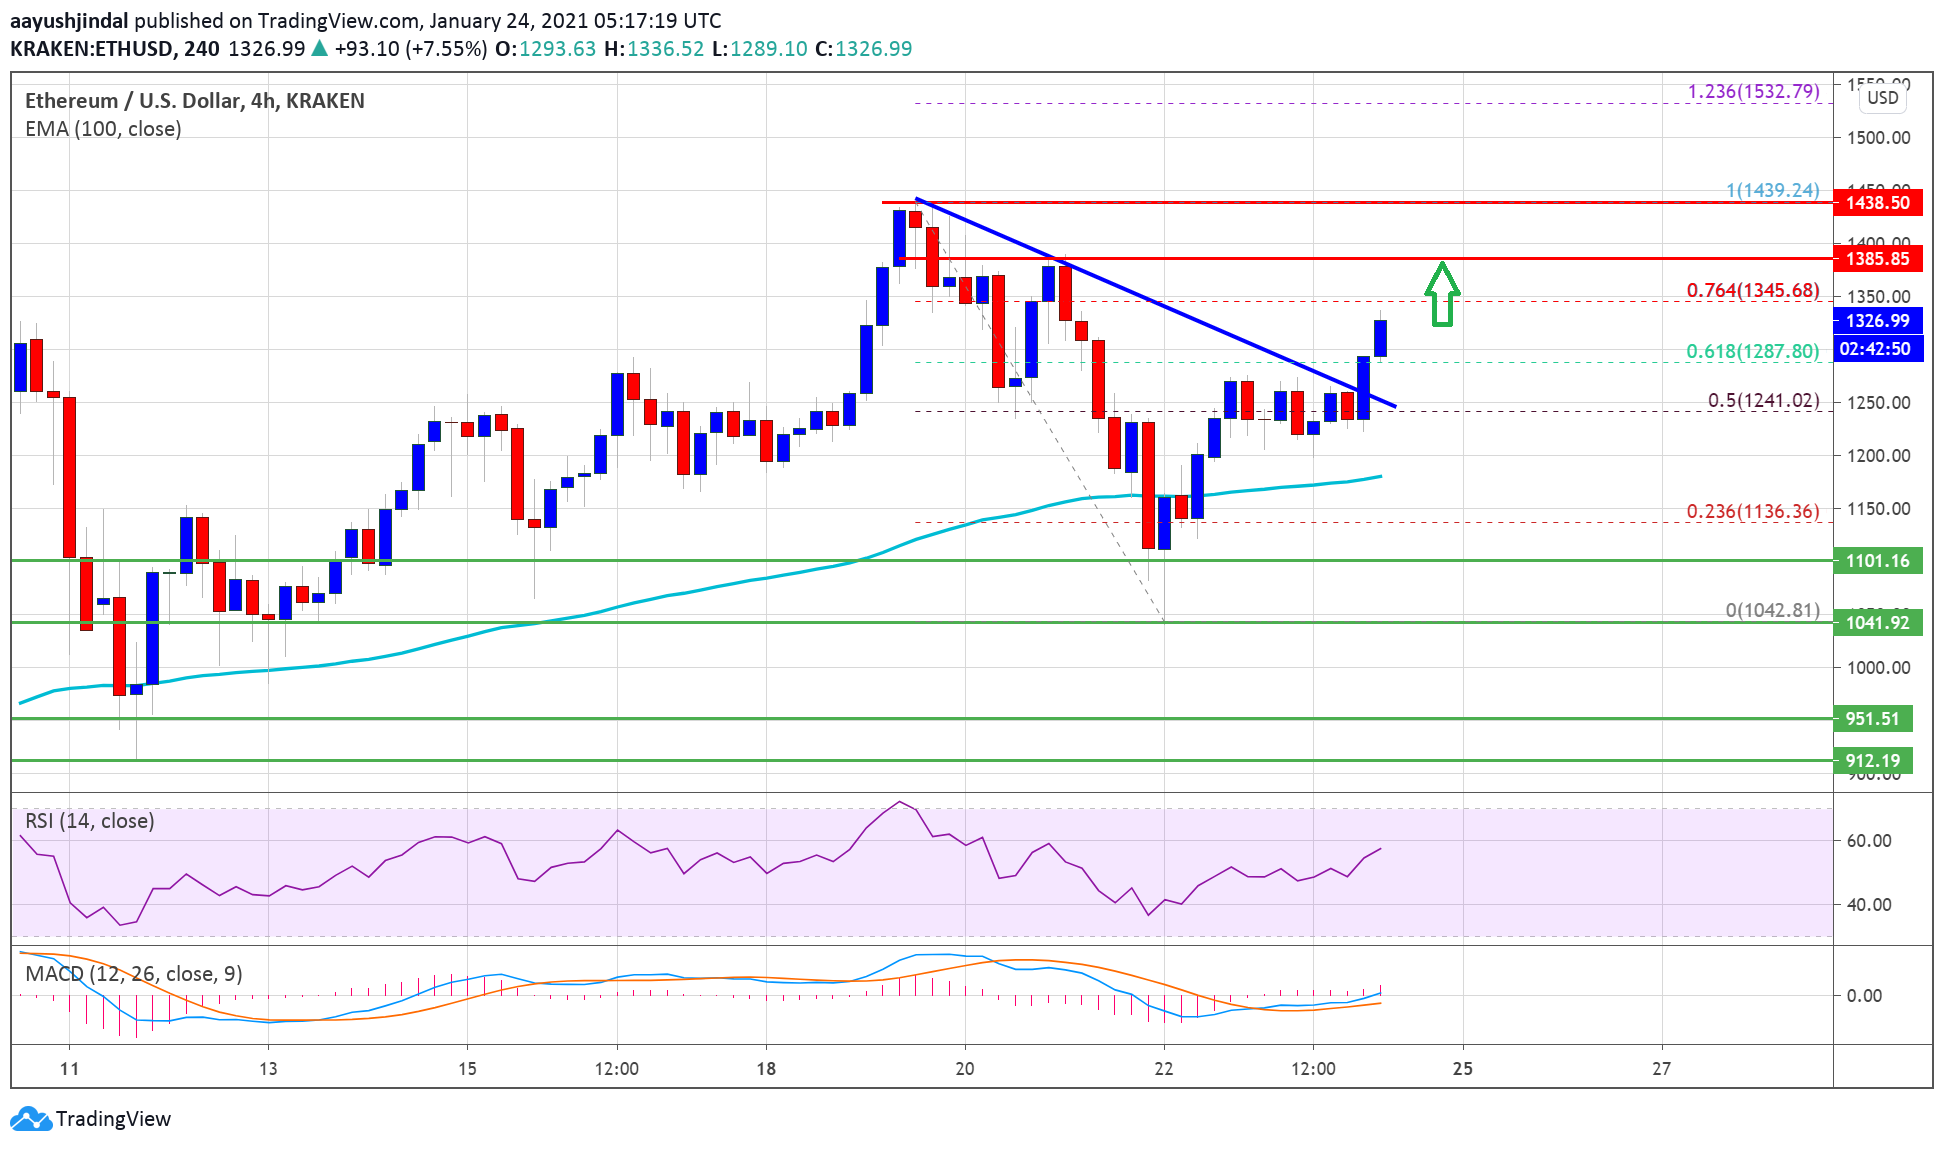 Ethereum Starts Fresh Increase, Why ETH Could Surge To $1,500